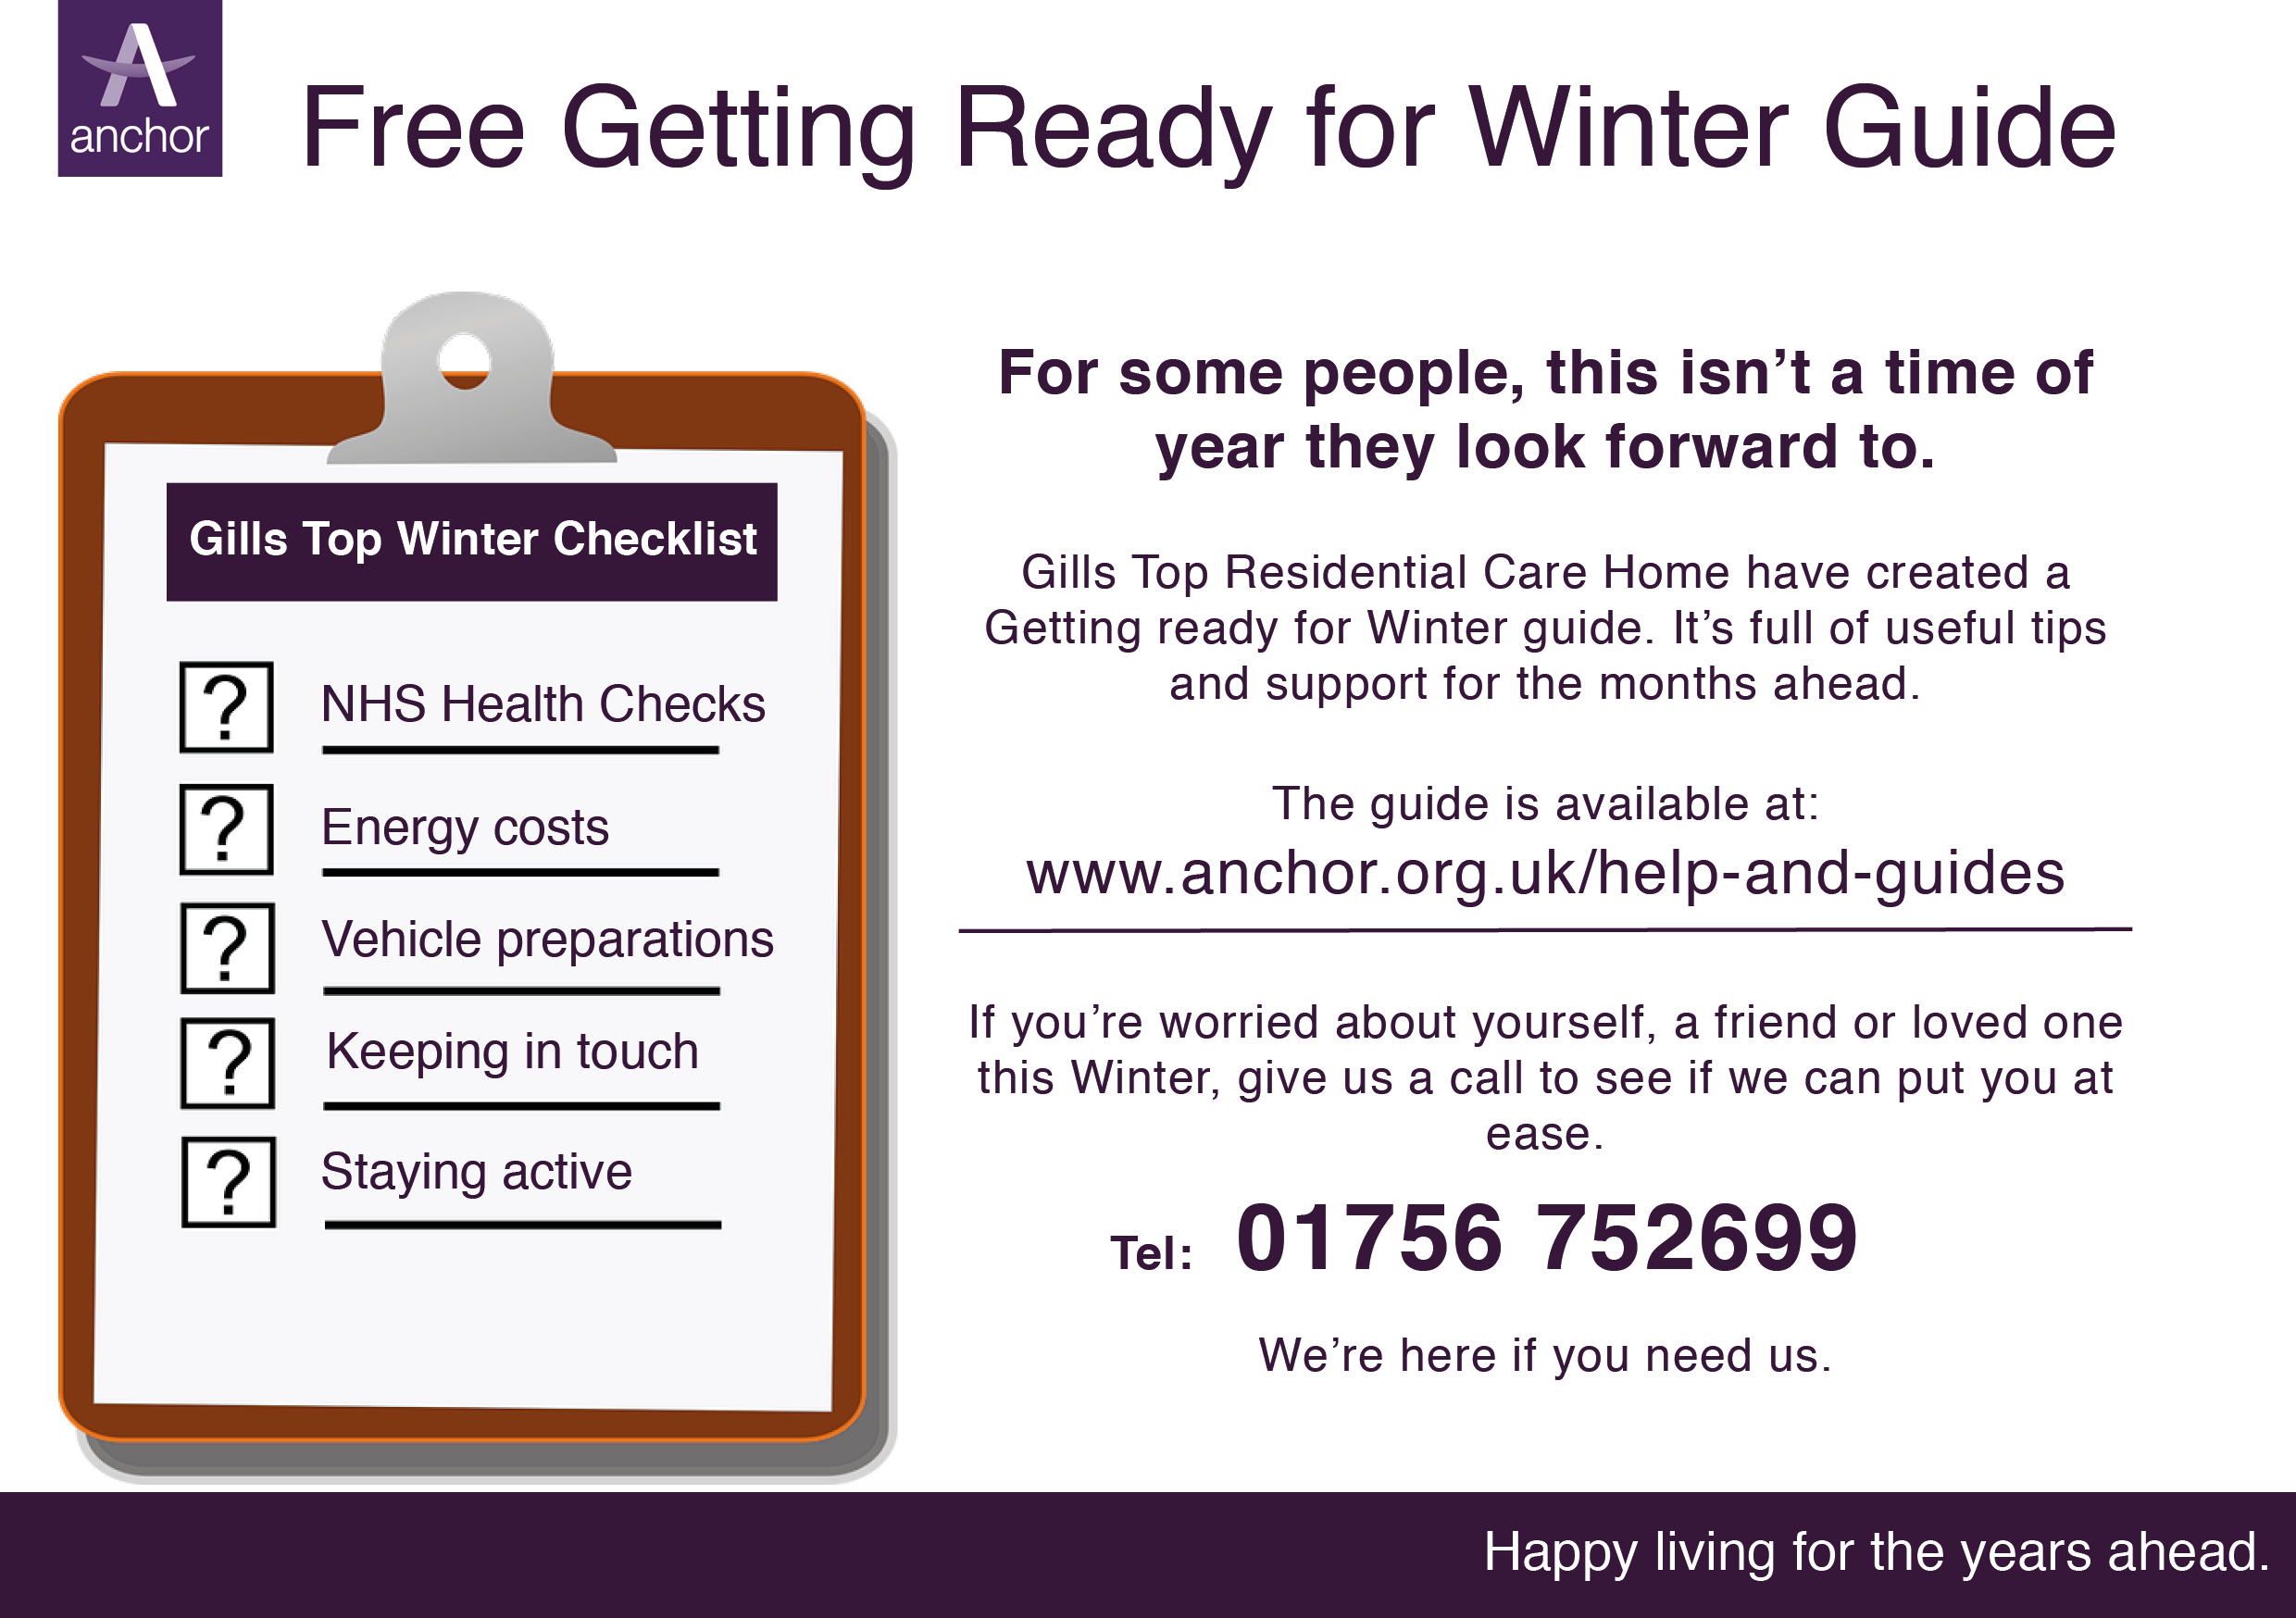 Design Work: Ready for Winter Guide Image